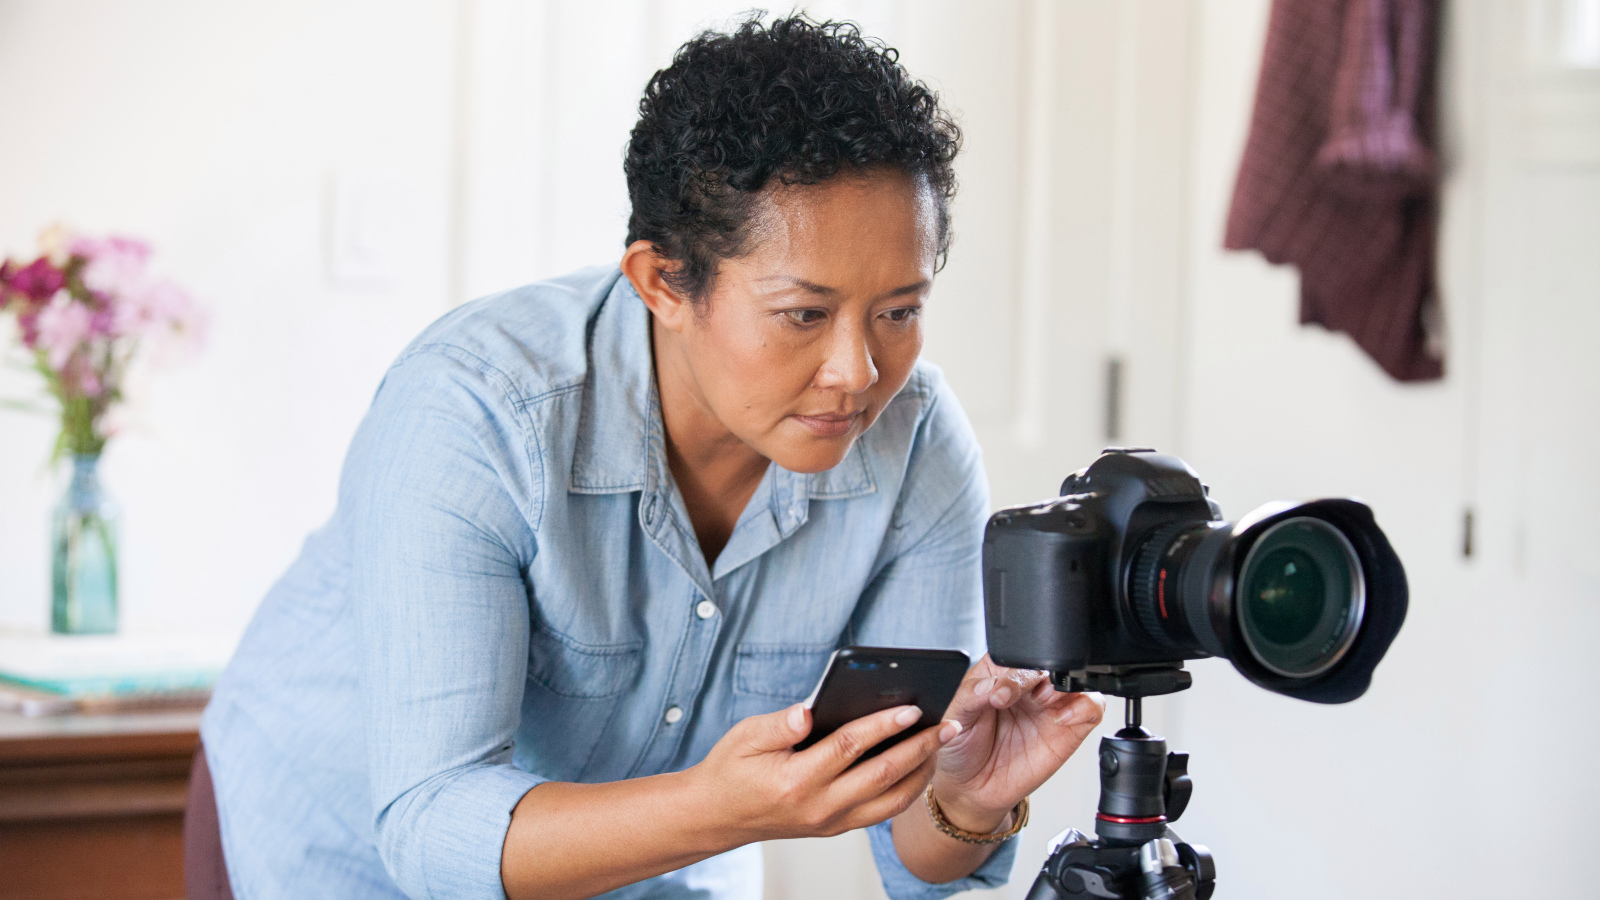 Host with short hair wearing a blue shirt taking a photo with a DSLR camera